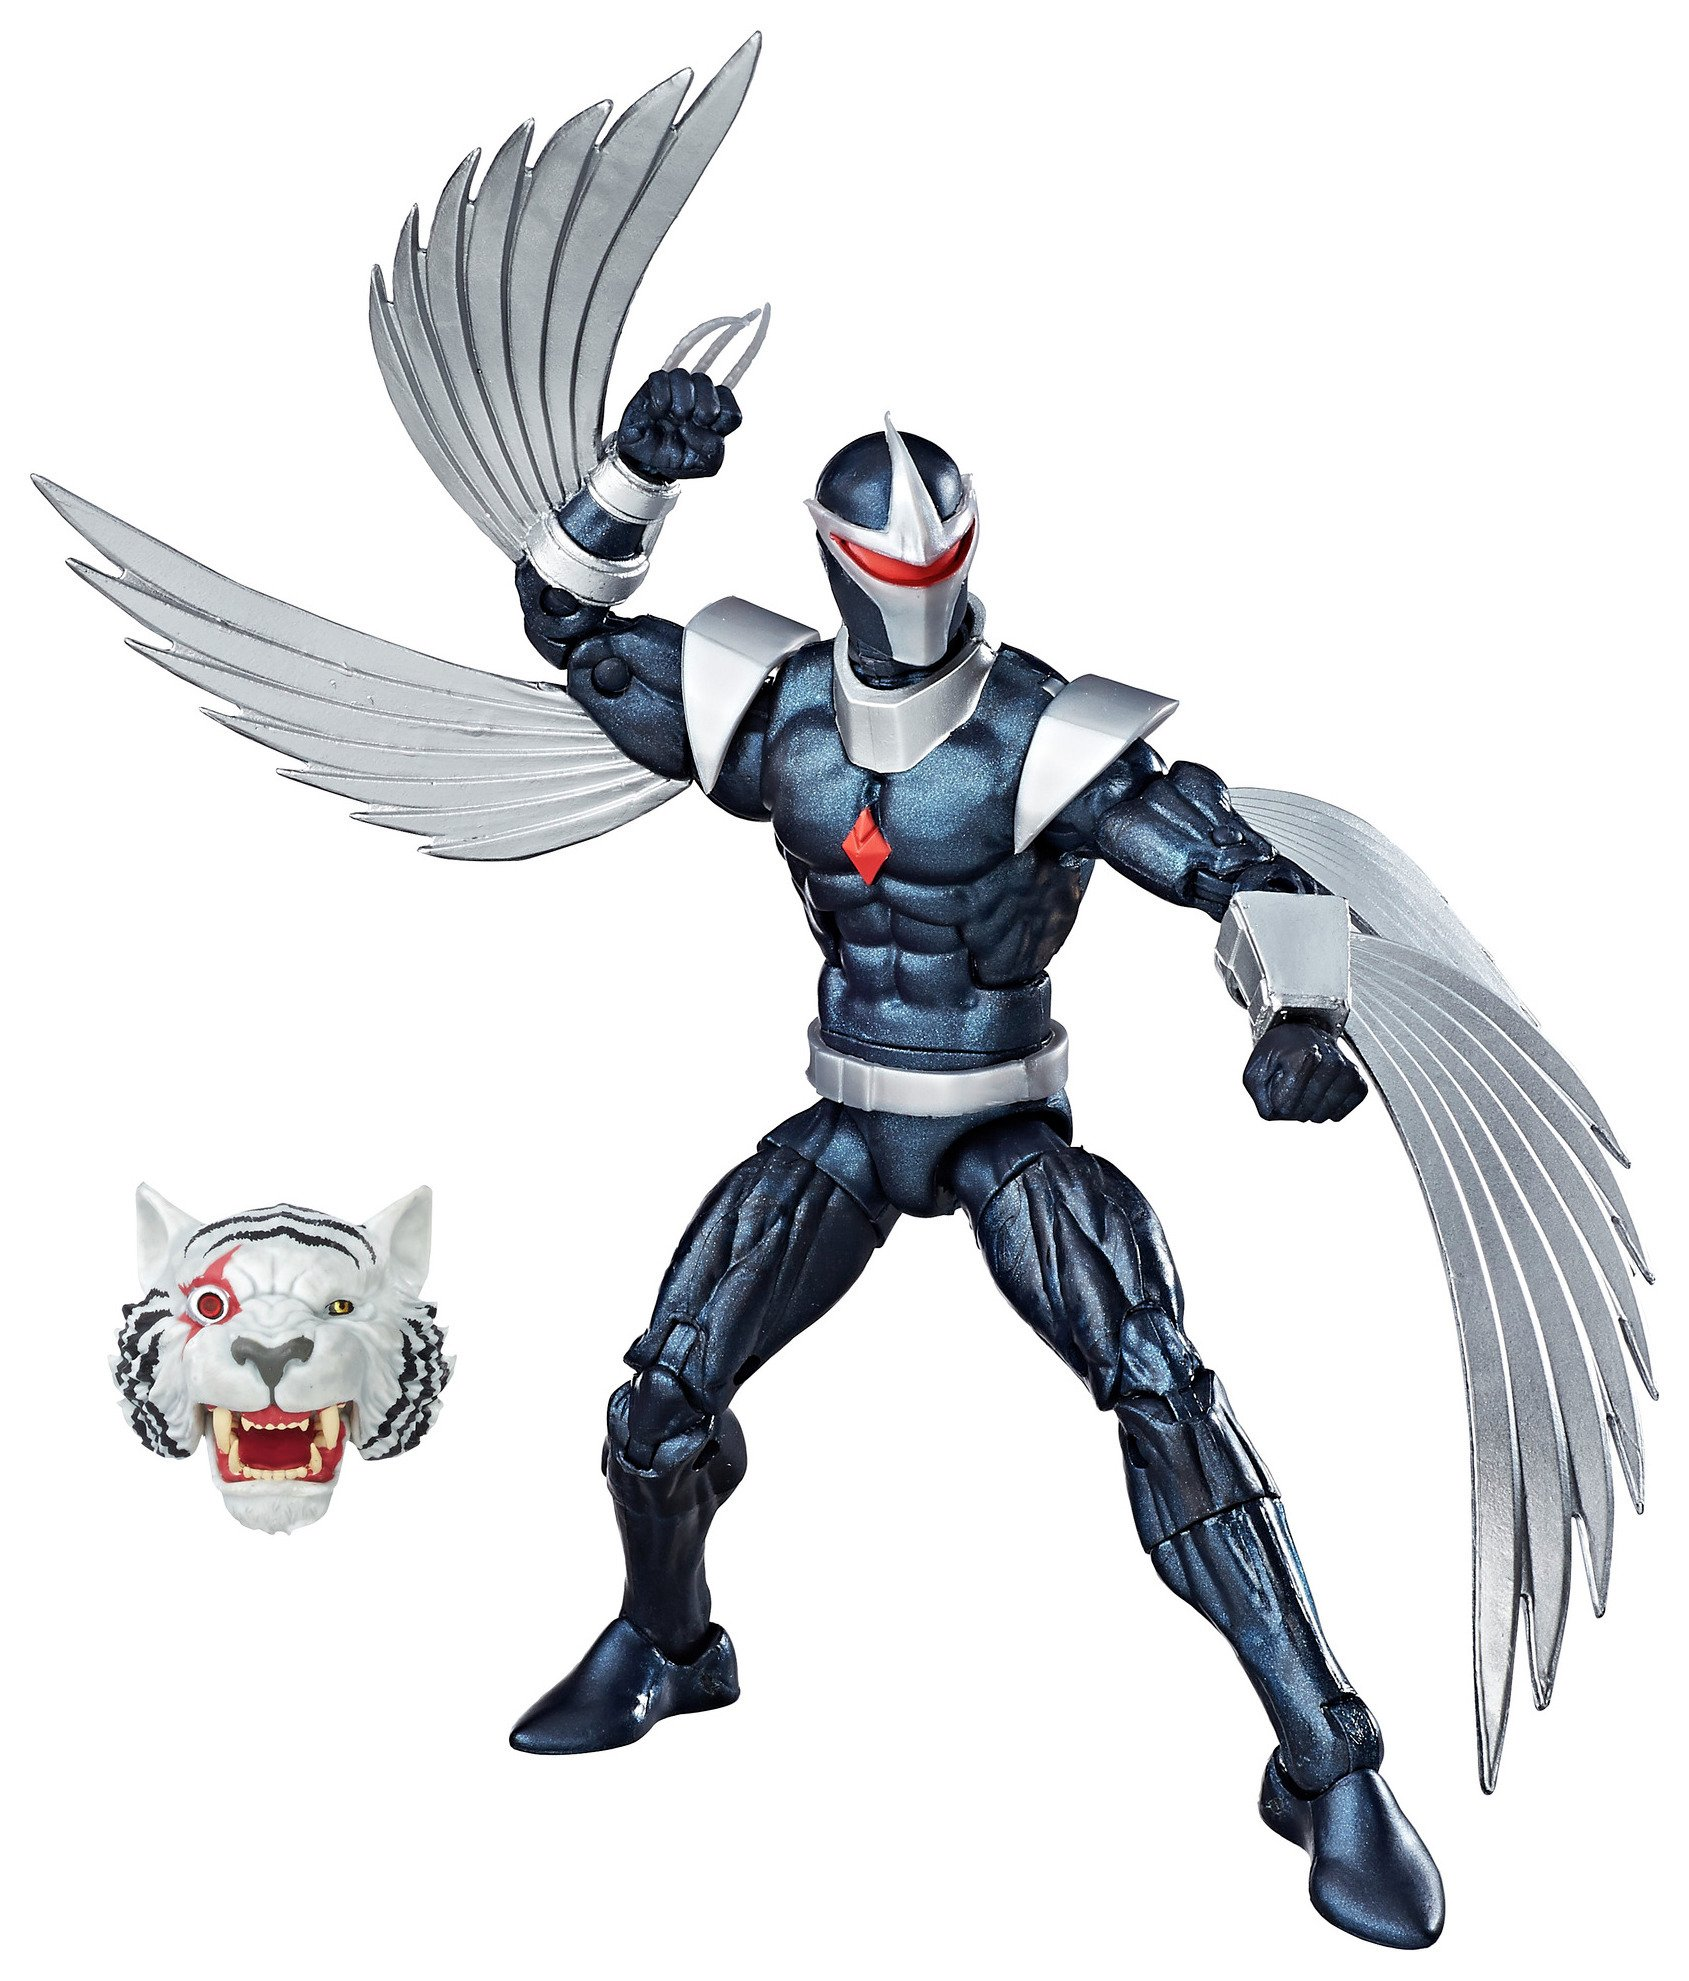 Image of Marvel Guardians of the Galaxy 6-inch Legends Darkhawk